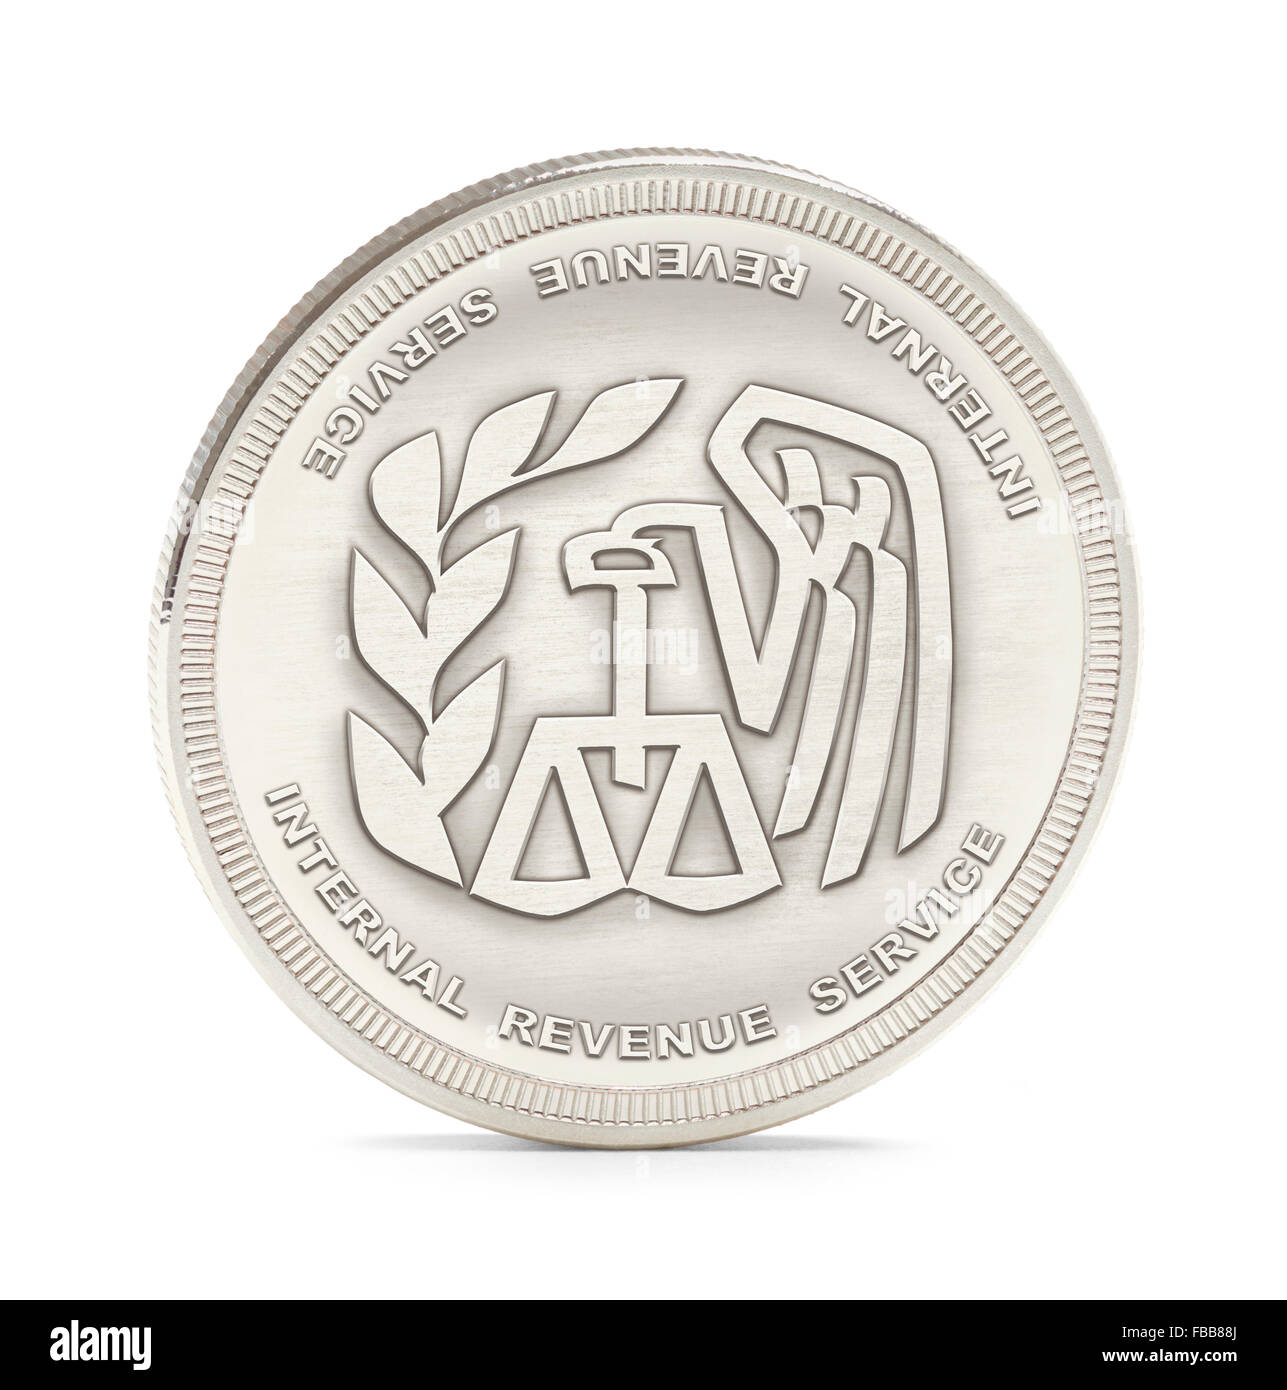 Internal Revenue Service Silver Coin Isolated on a White Background. - Stock Image